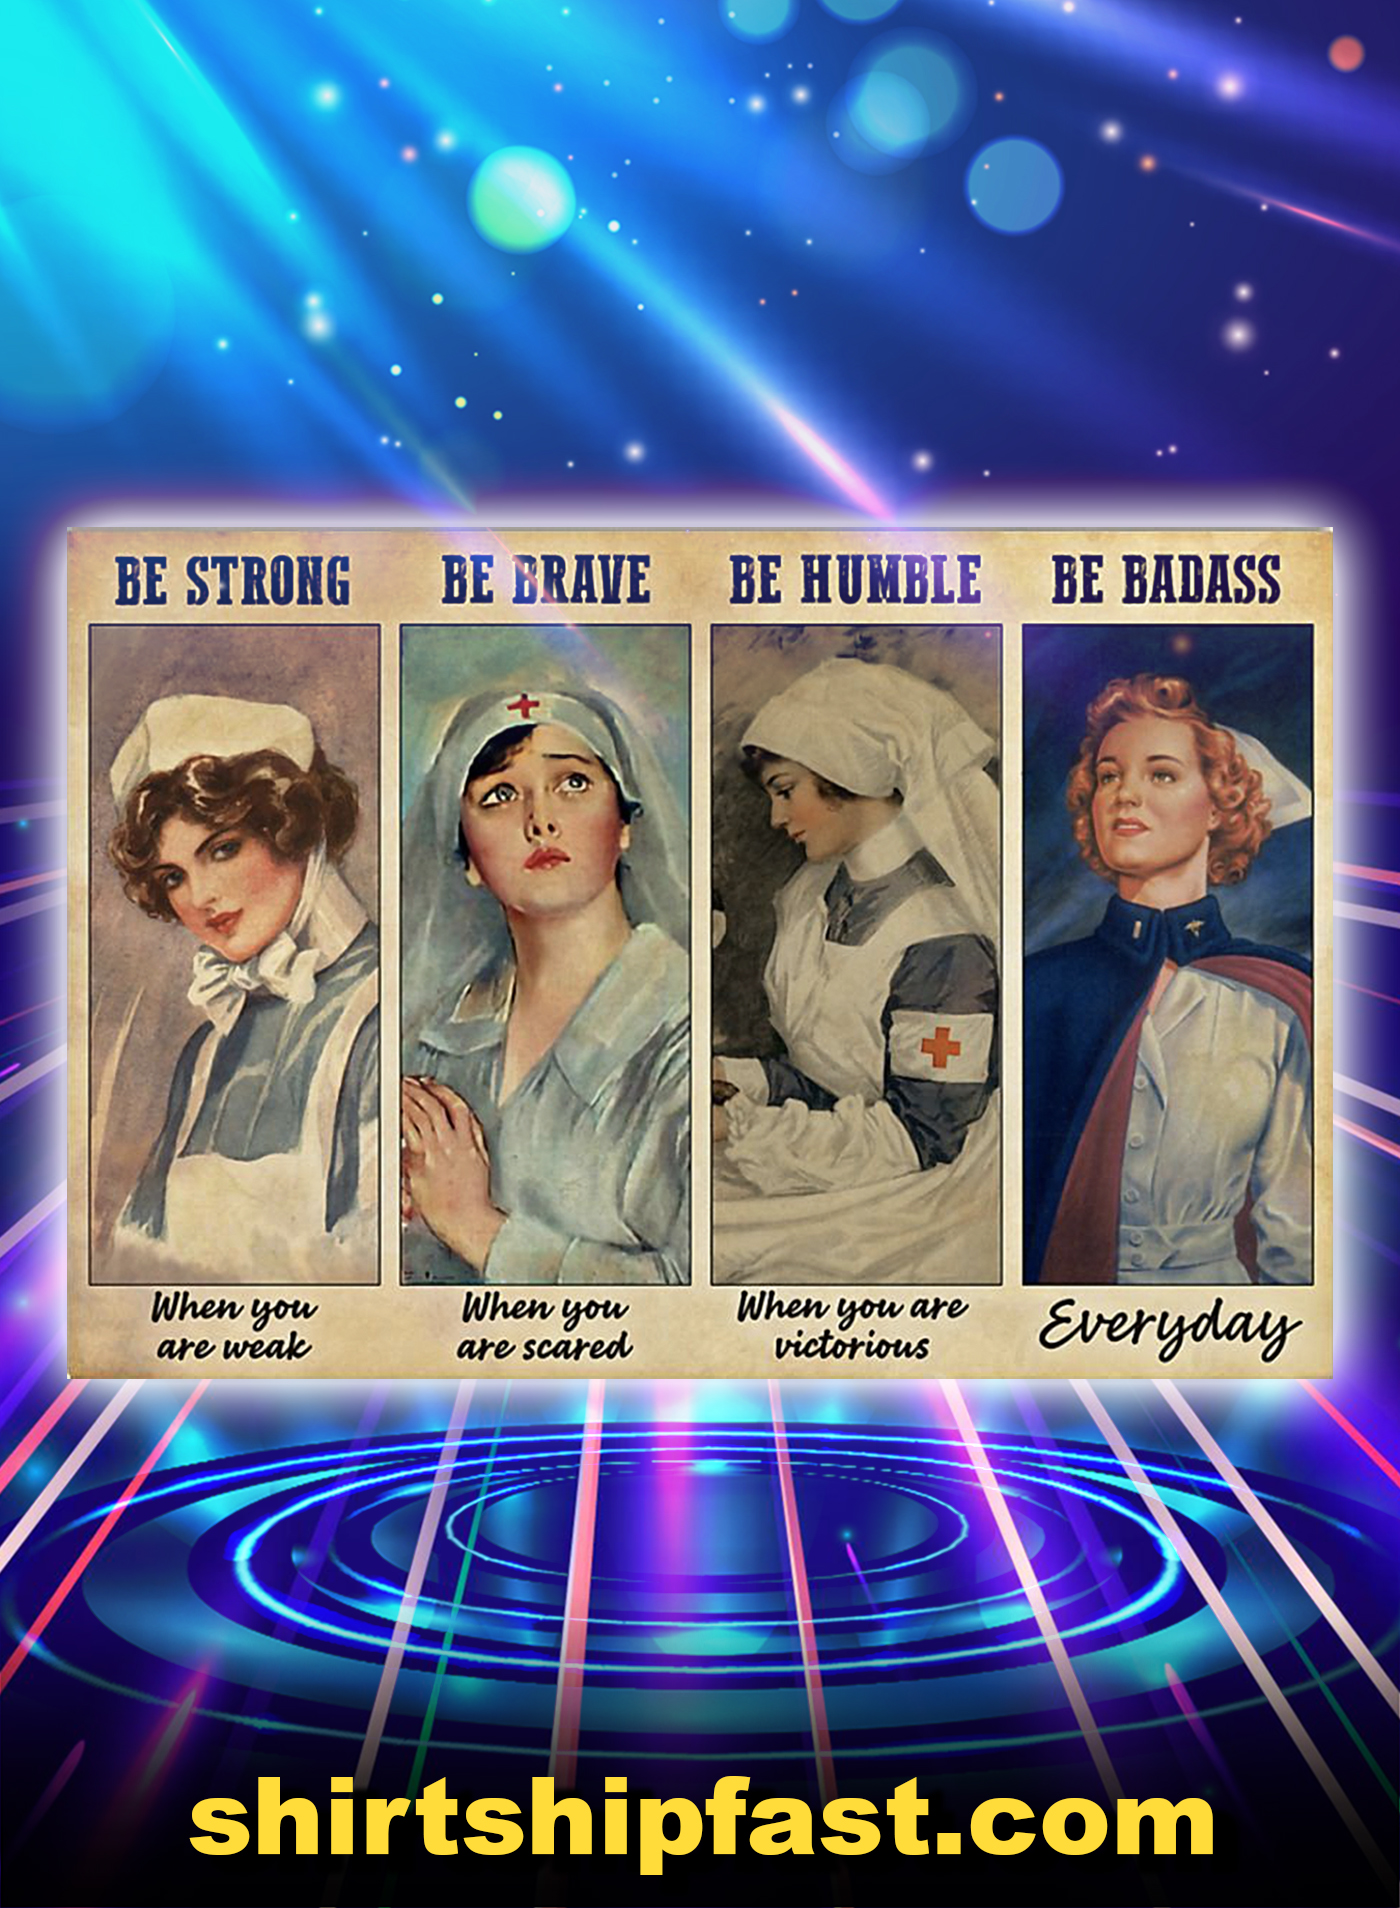 Nurse Women Be strong be brave be humble be badass poster - A1